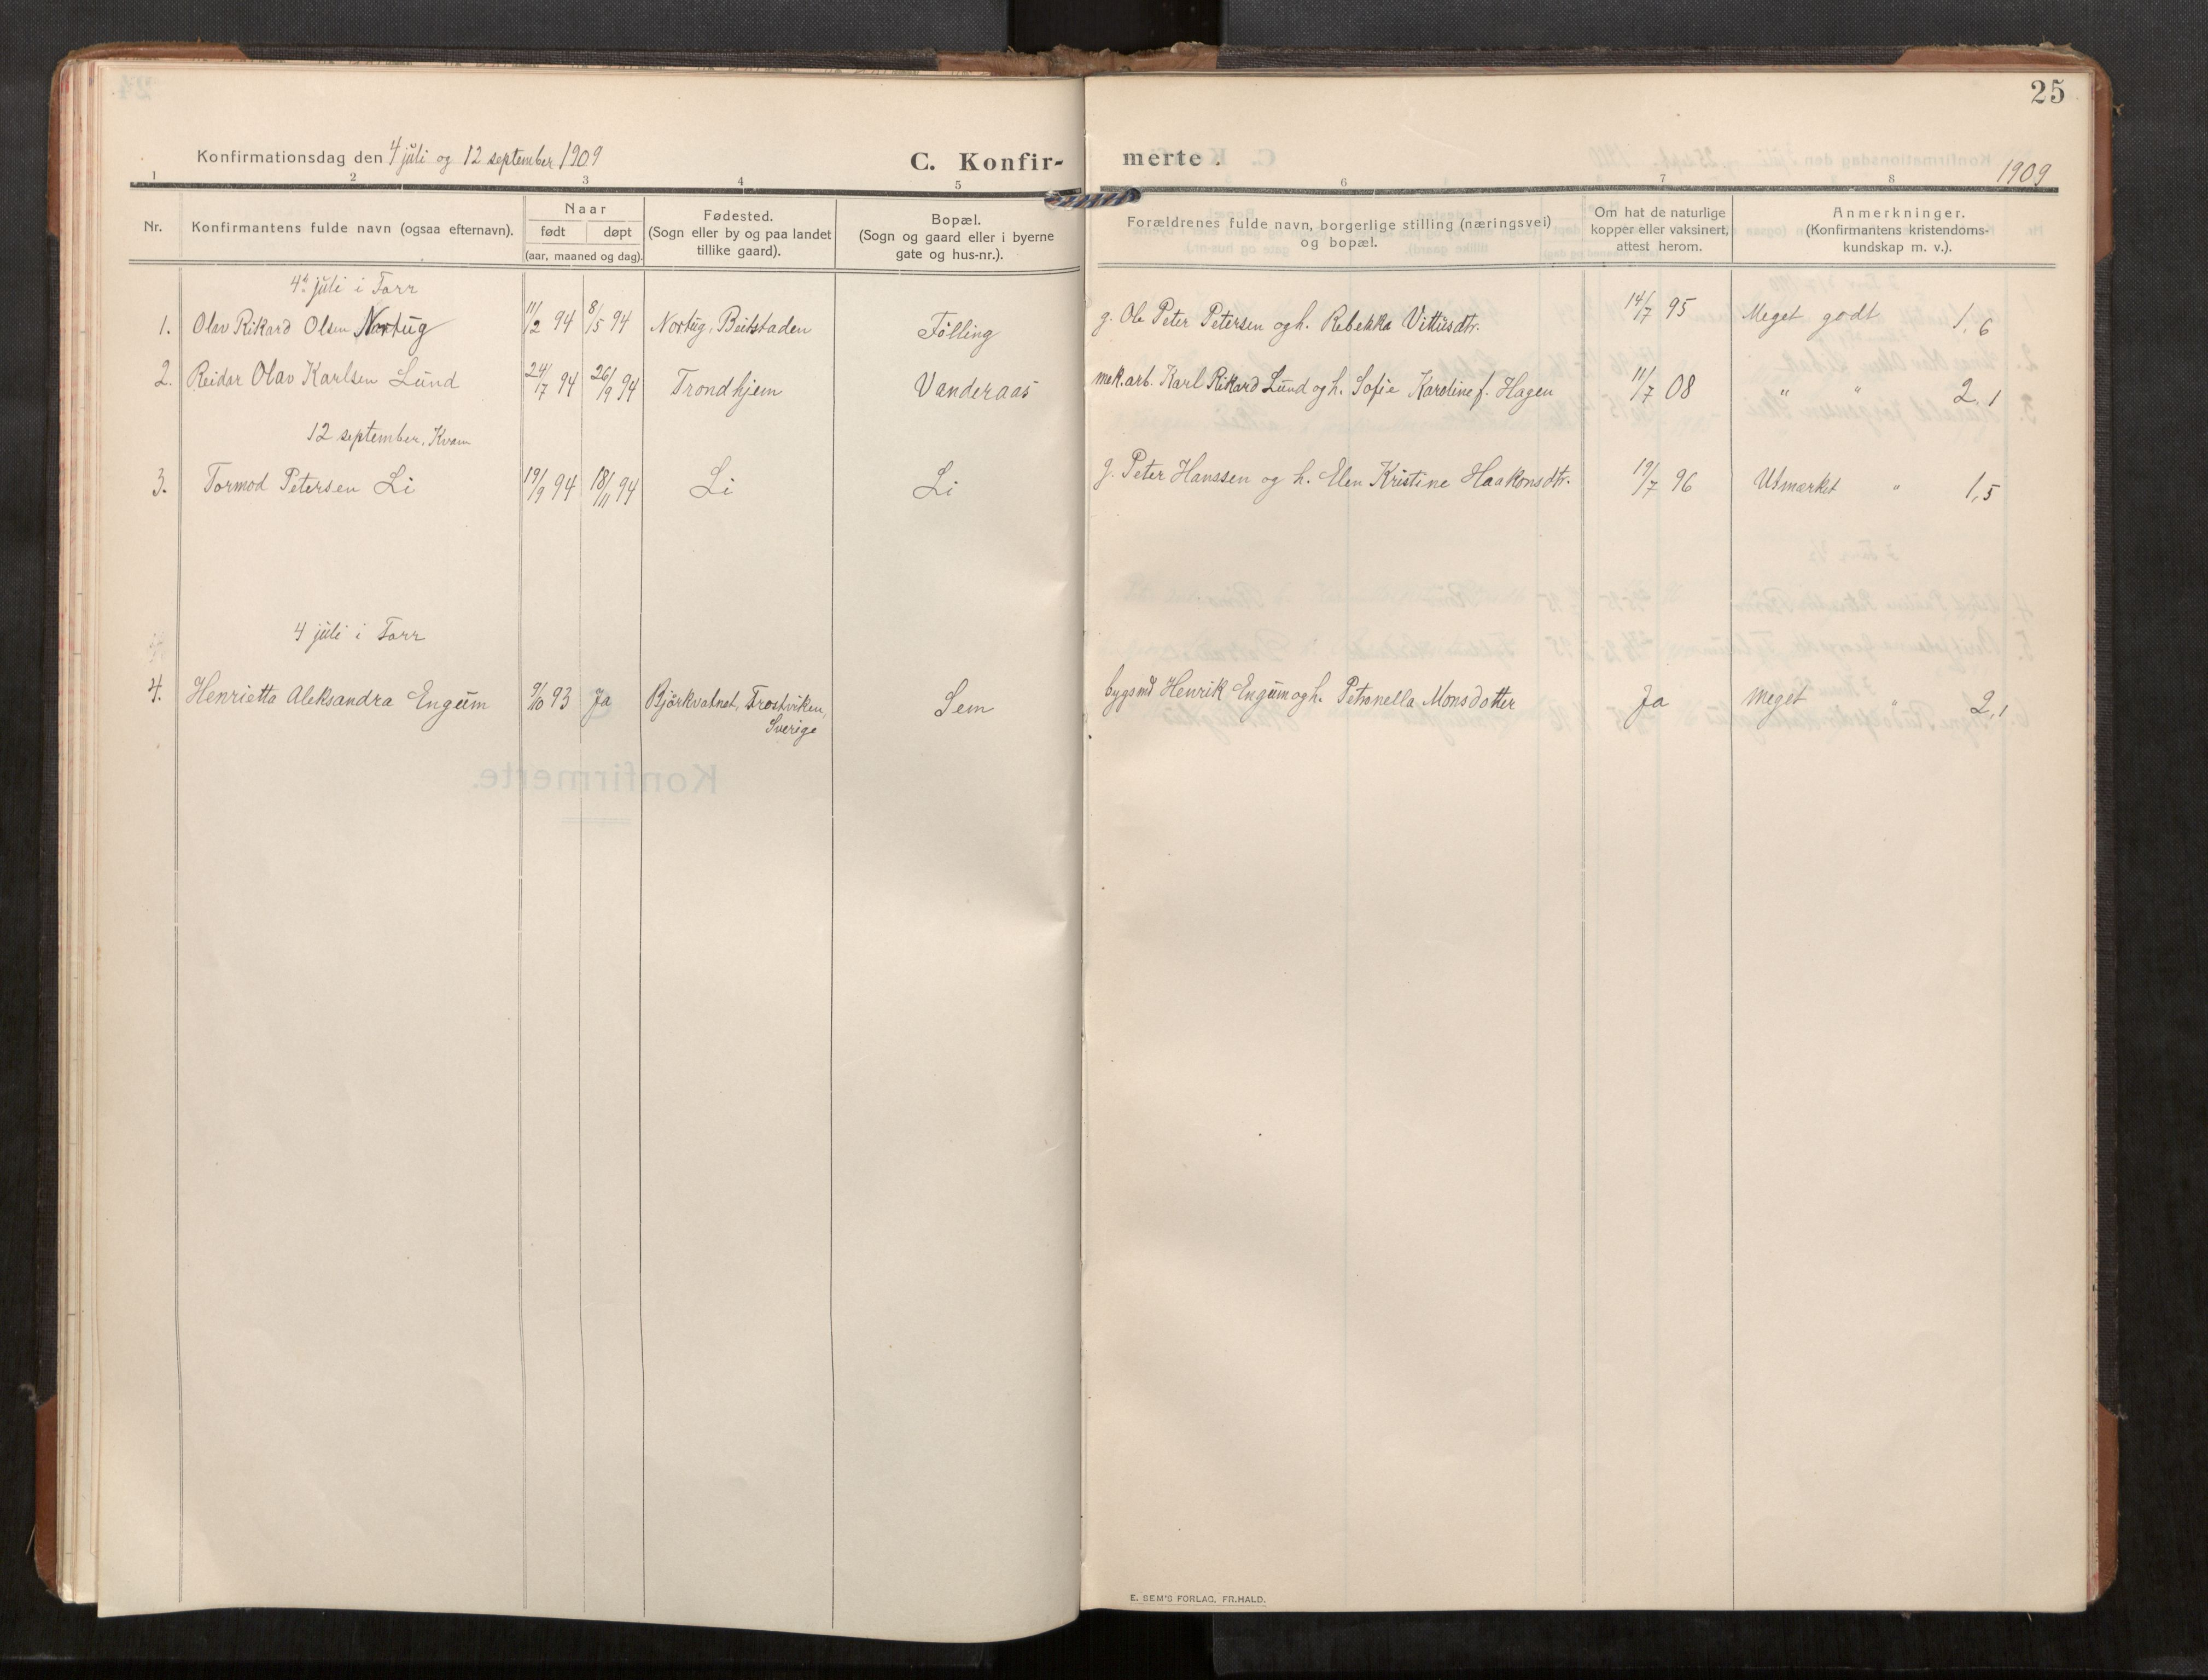 SAT, Stod sokneprestkontor, I/I1/I1a/L0003: Parish register (official) no. 3, 1909-1934, p. 25